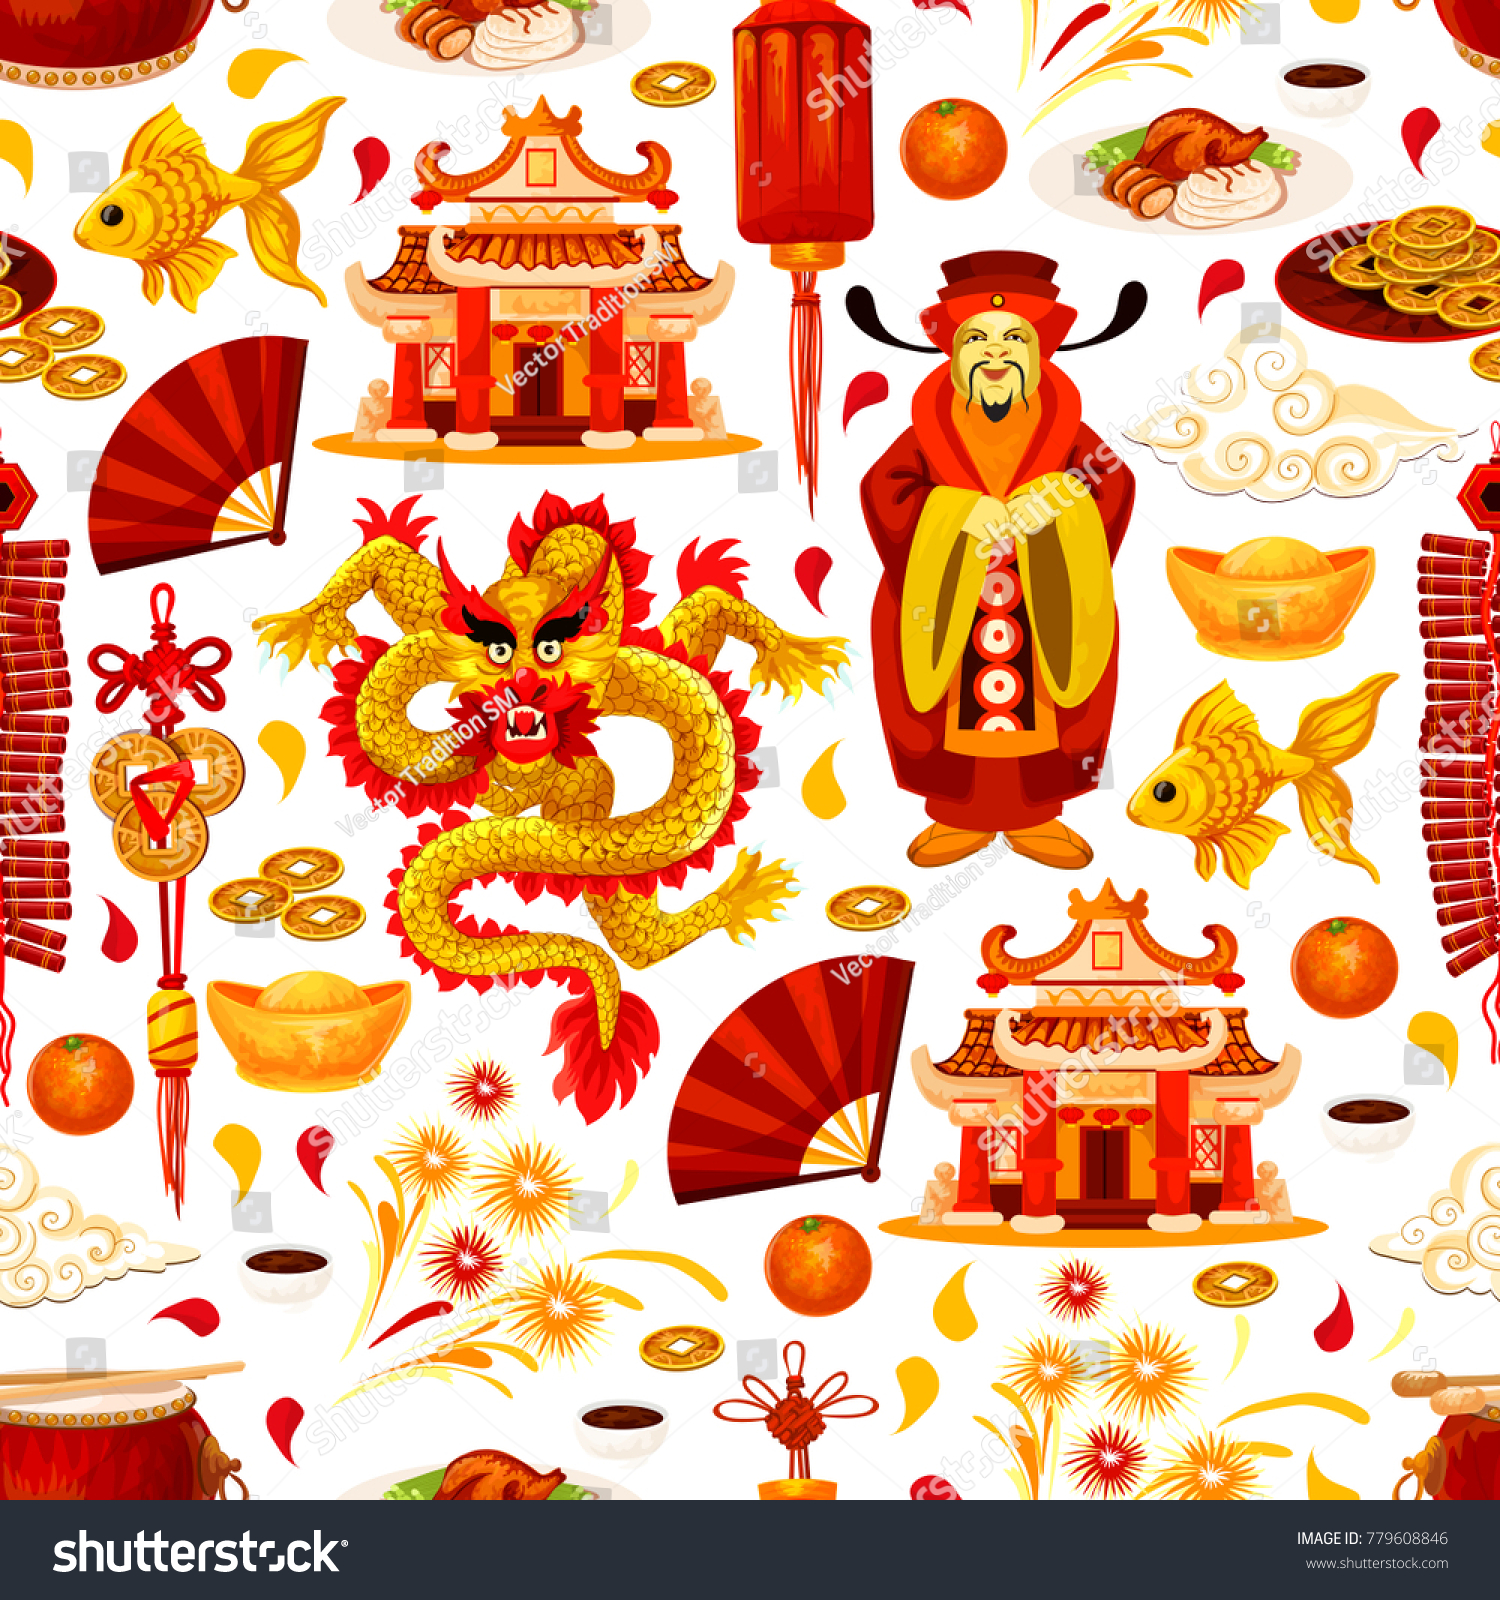 chinese lunar new year holiday traditional symbols seamless pattern vector background of golden china decorations - Chinese New Year Holiday